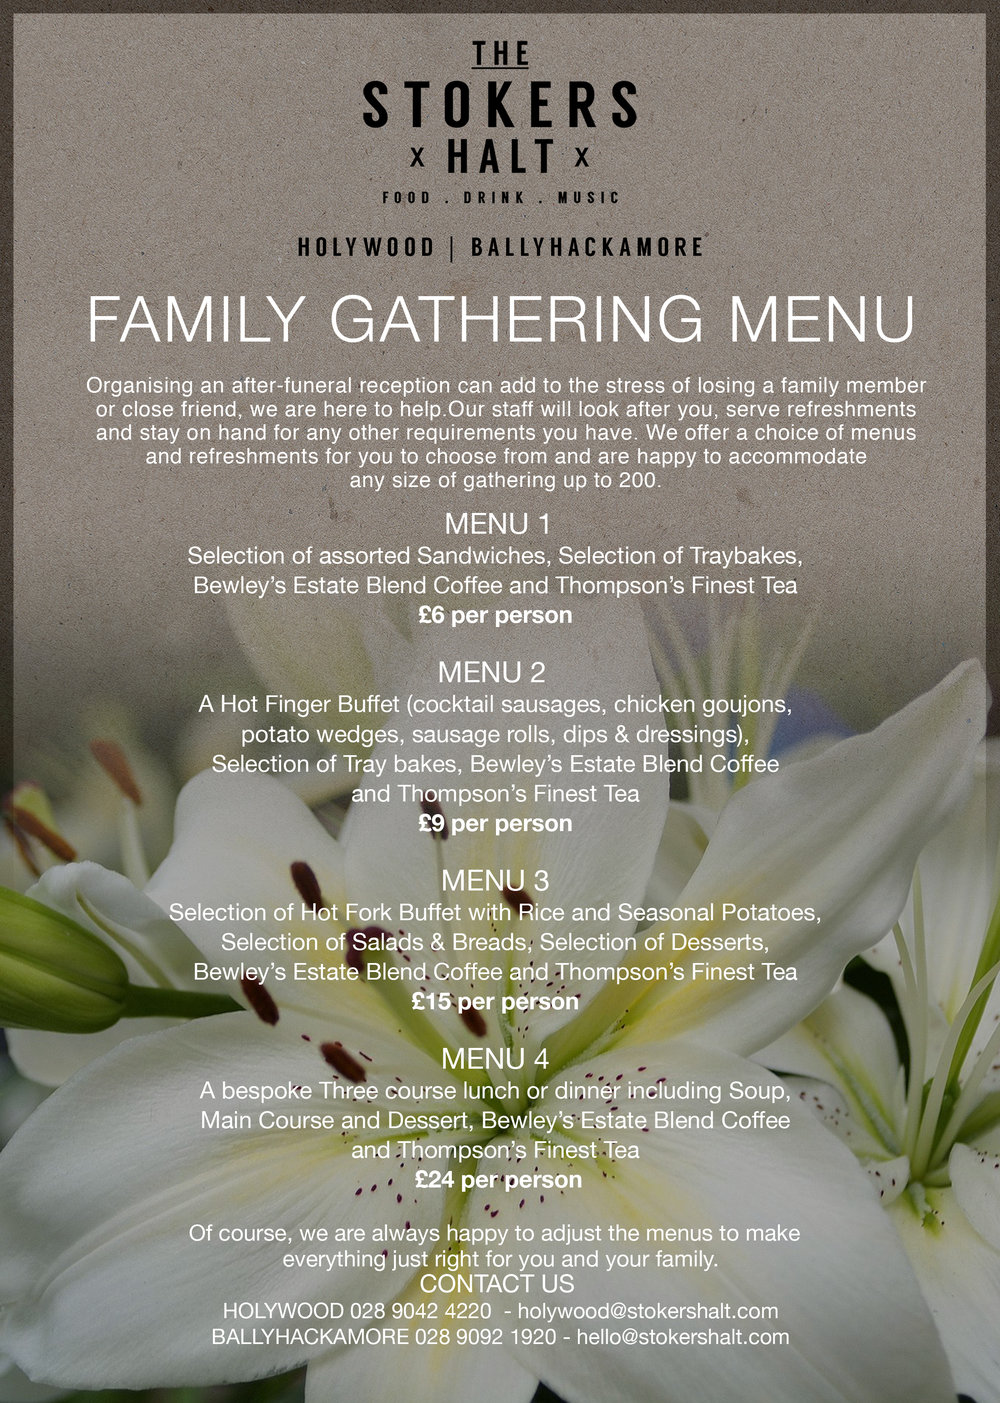 STOKERS MENU FAMILY GATHERING 2017.jpg